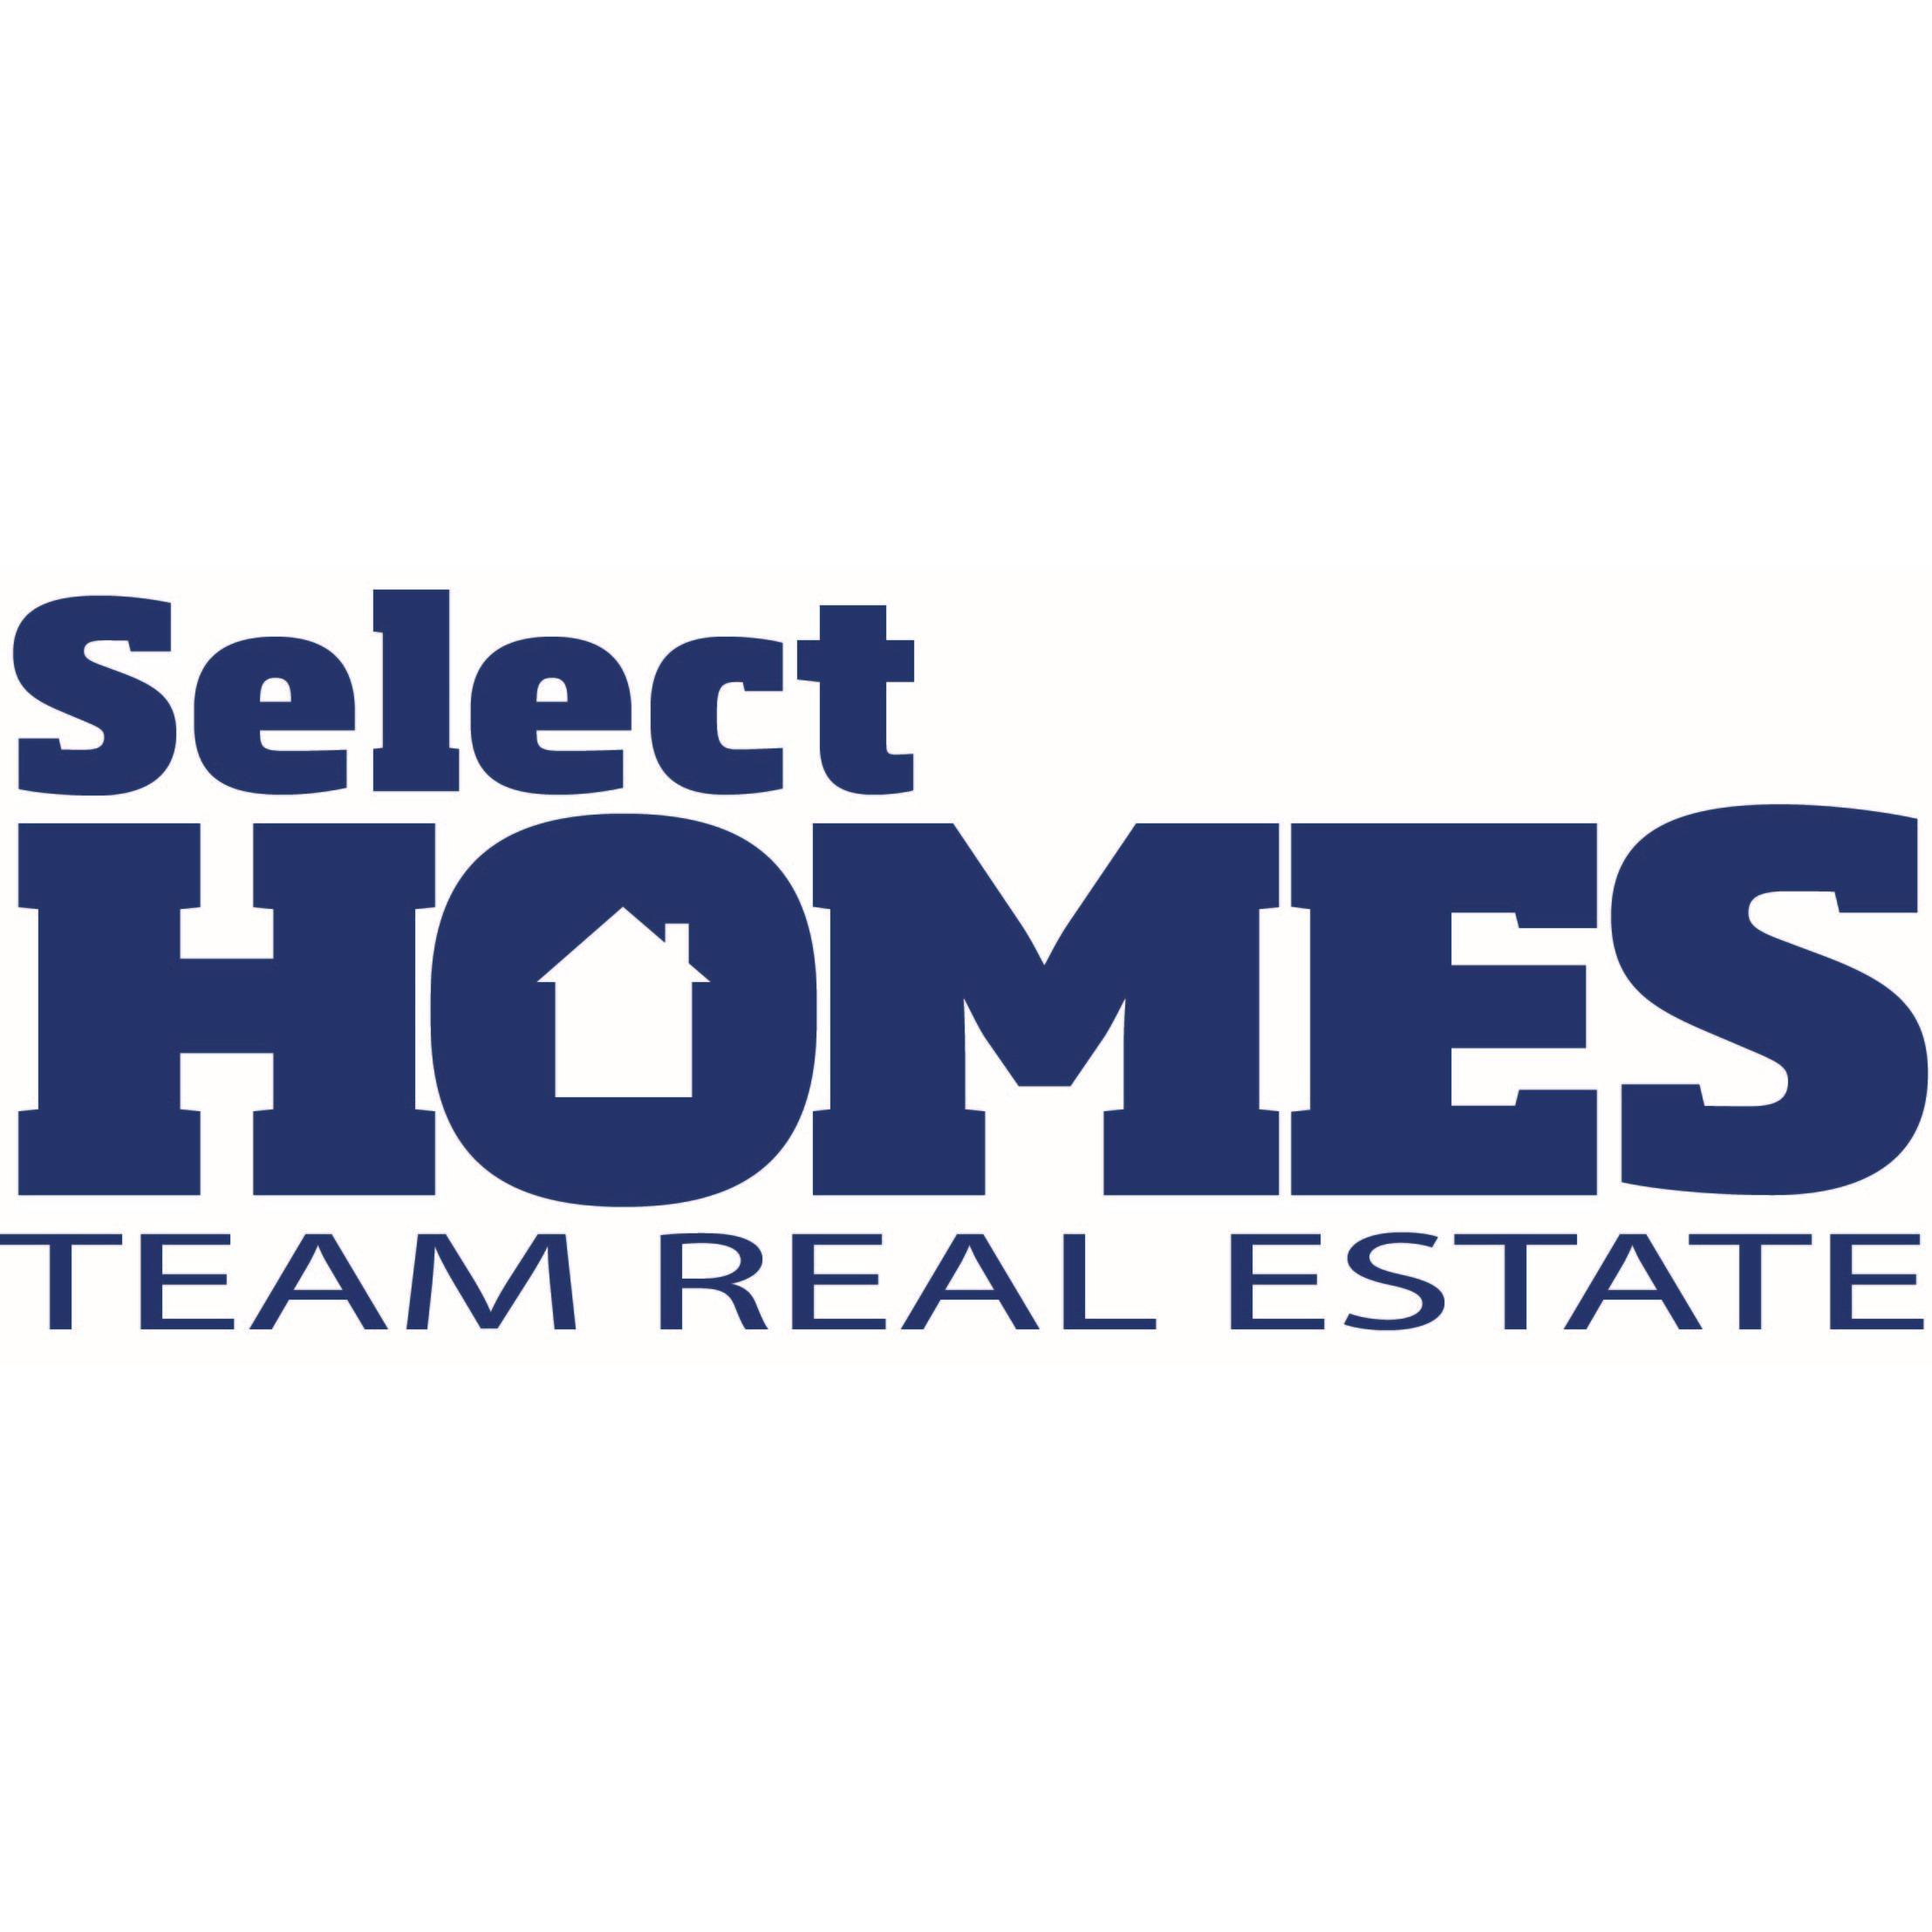 Select Homes Hutchinson Team Real Estate In Hutchinson